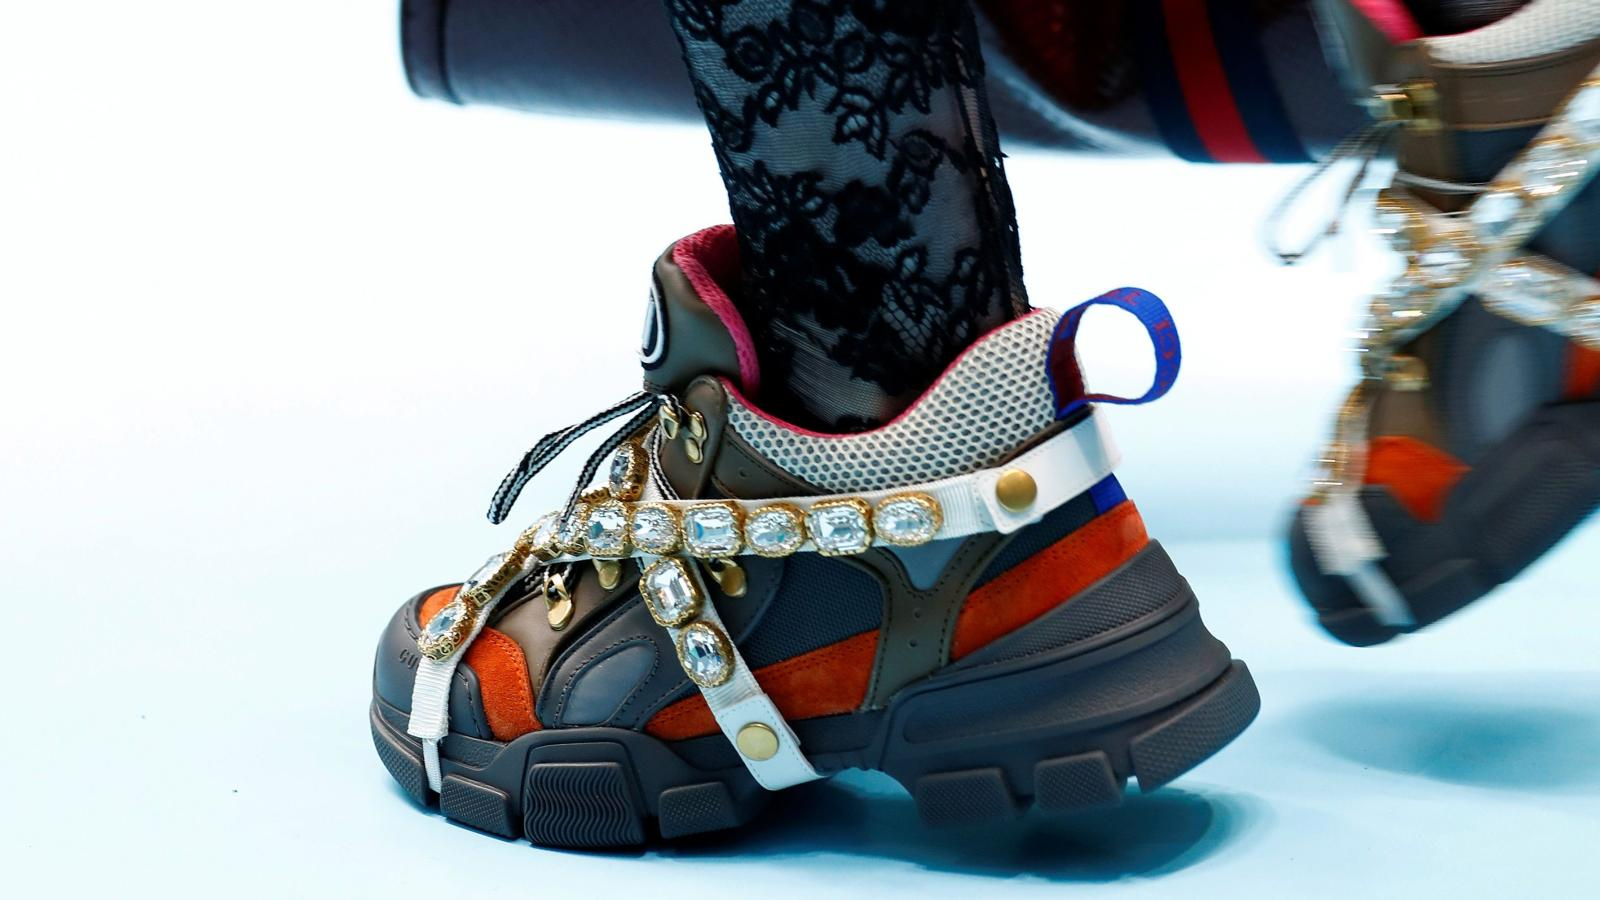 c9e64a3ea24 The ugly designer sneakers that have taken over fashion — Quartzy